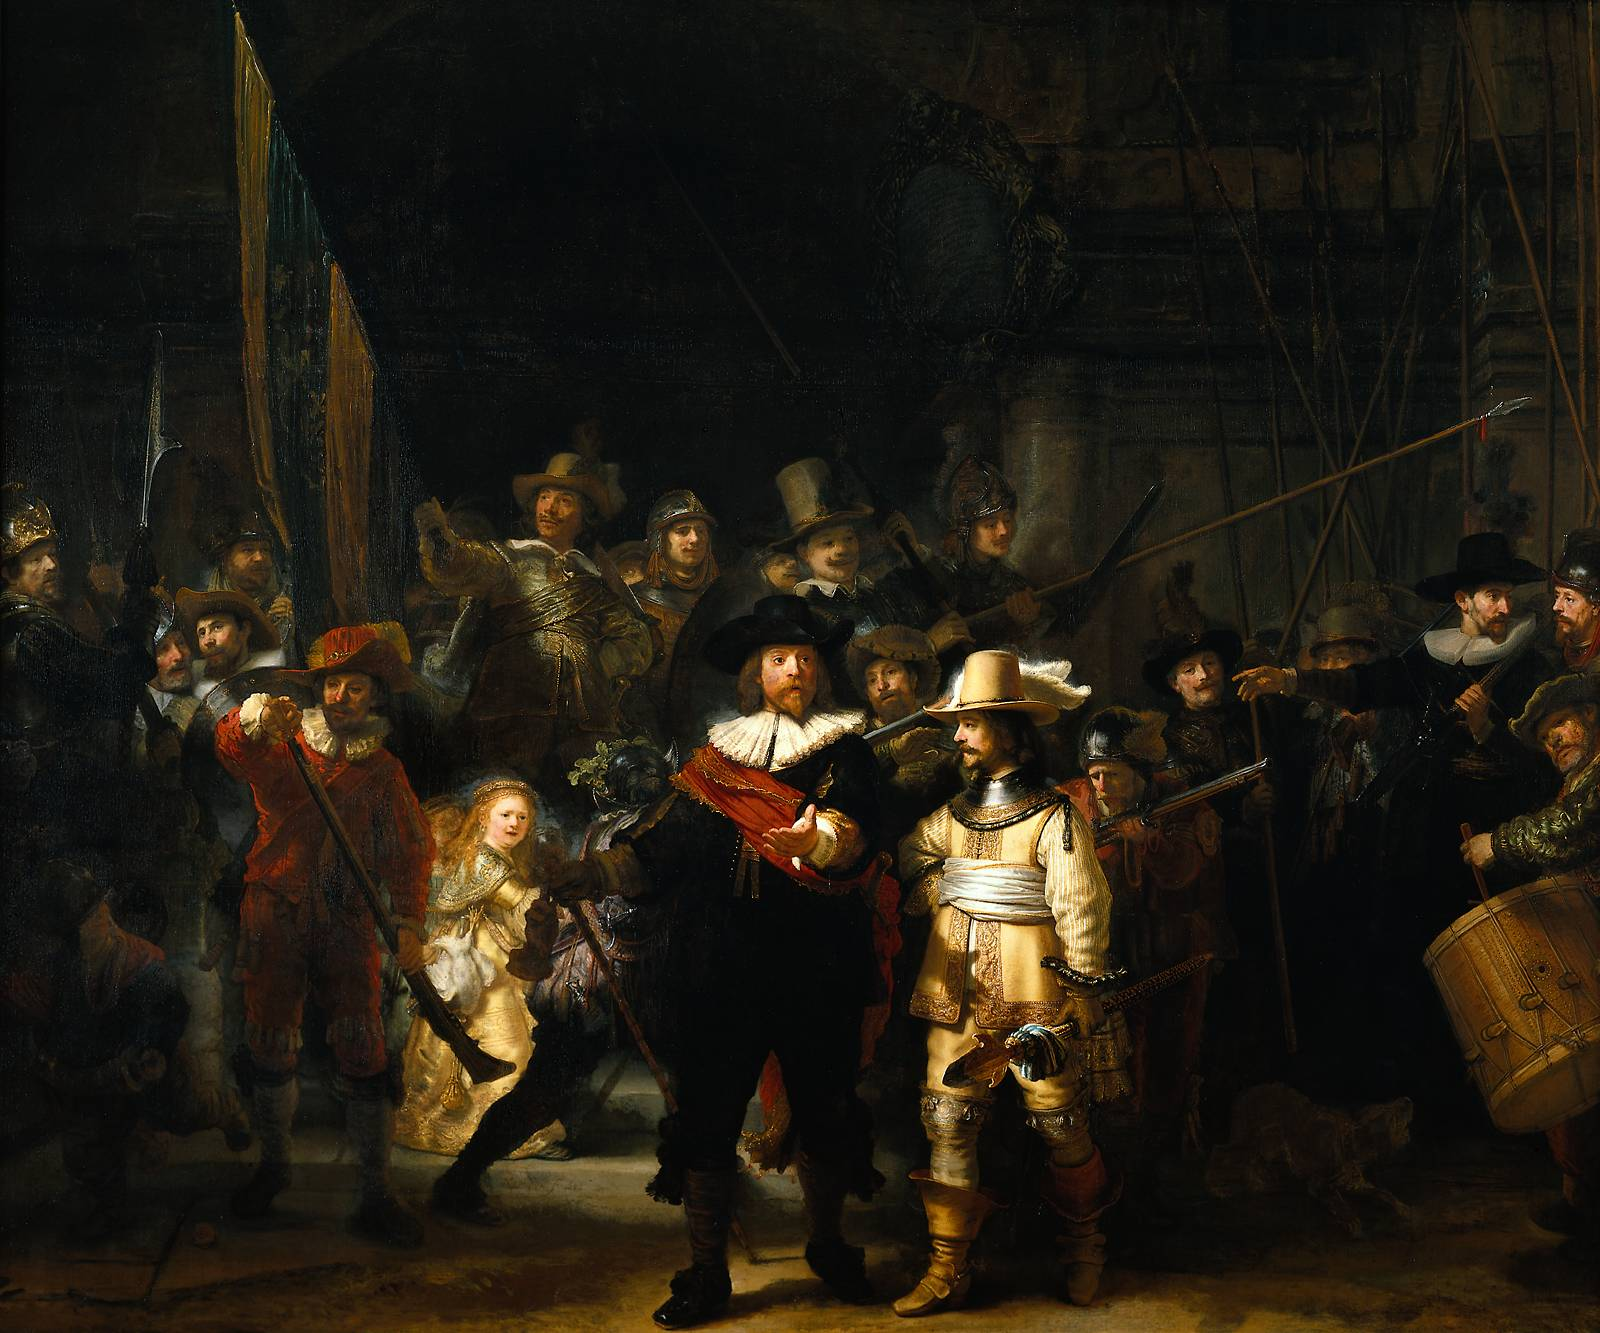 dailyimage-TheNightwatch-Rembrandt-31-4-92